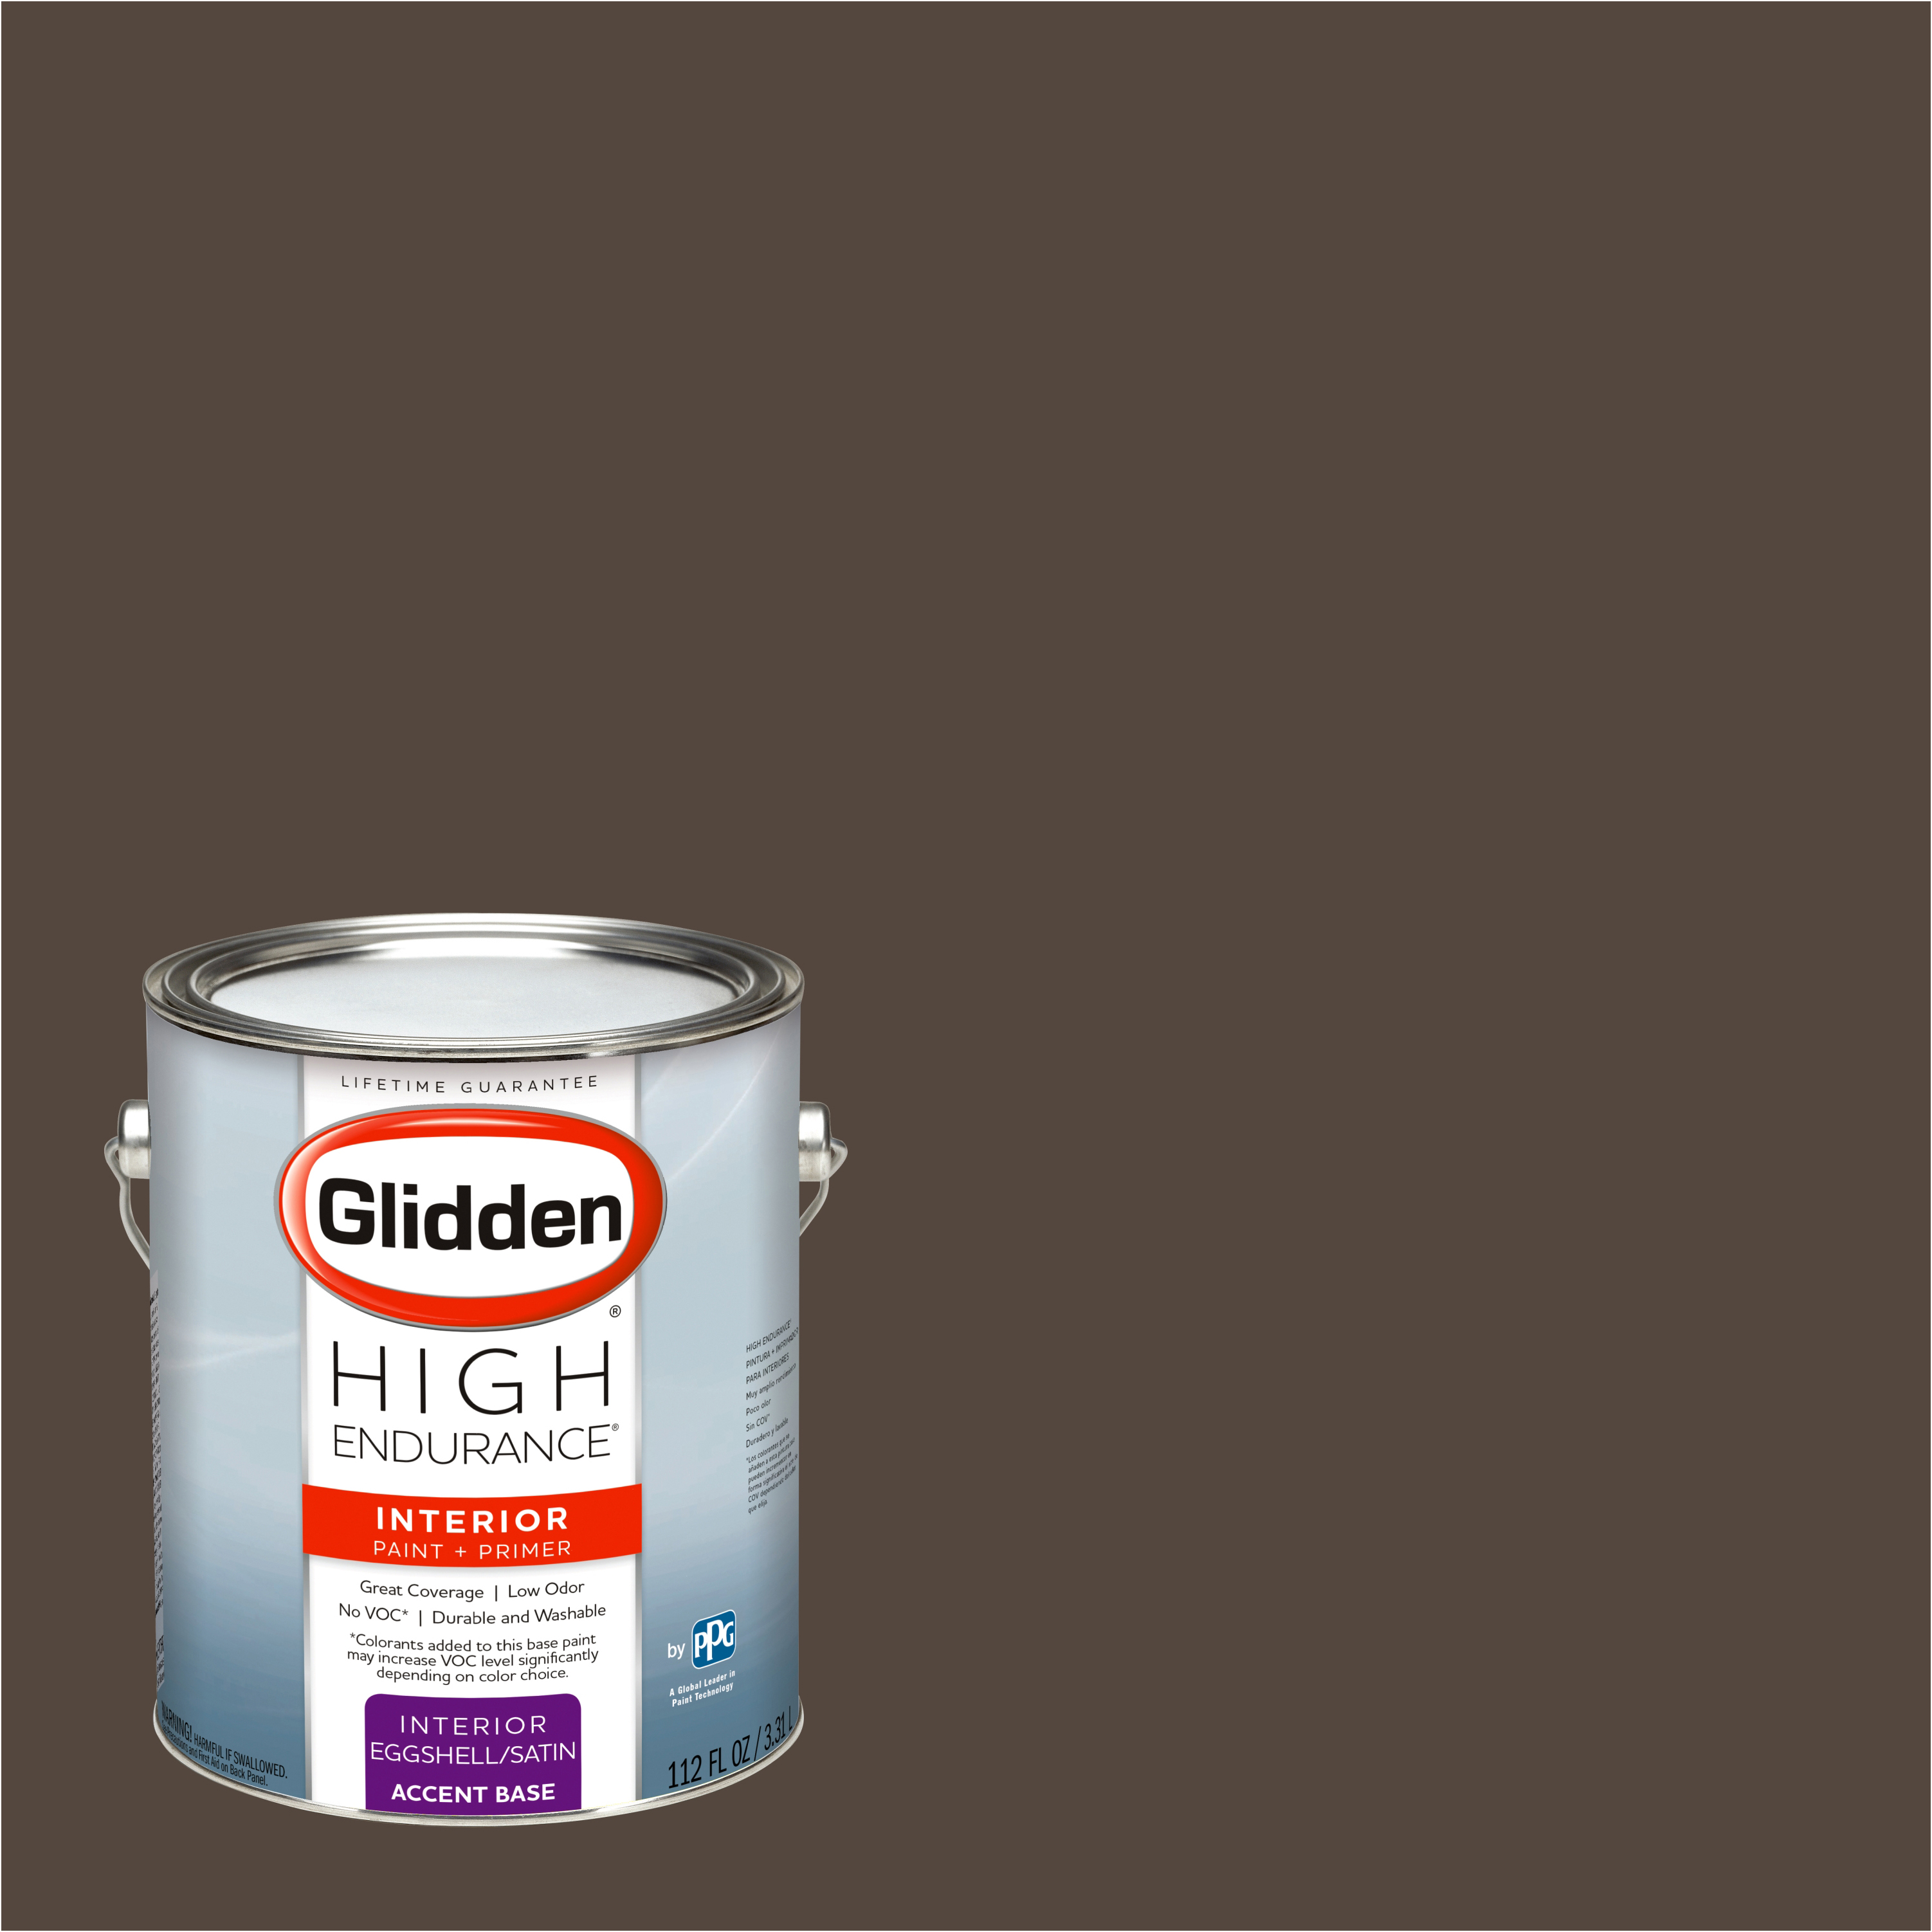 Glidden High Endurance, Interior Paint and Primer, Earth Brown, # 00YY 07/093